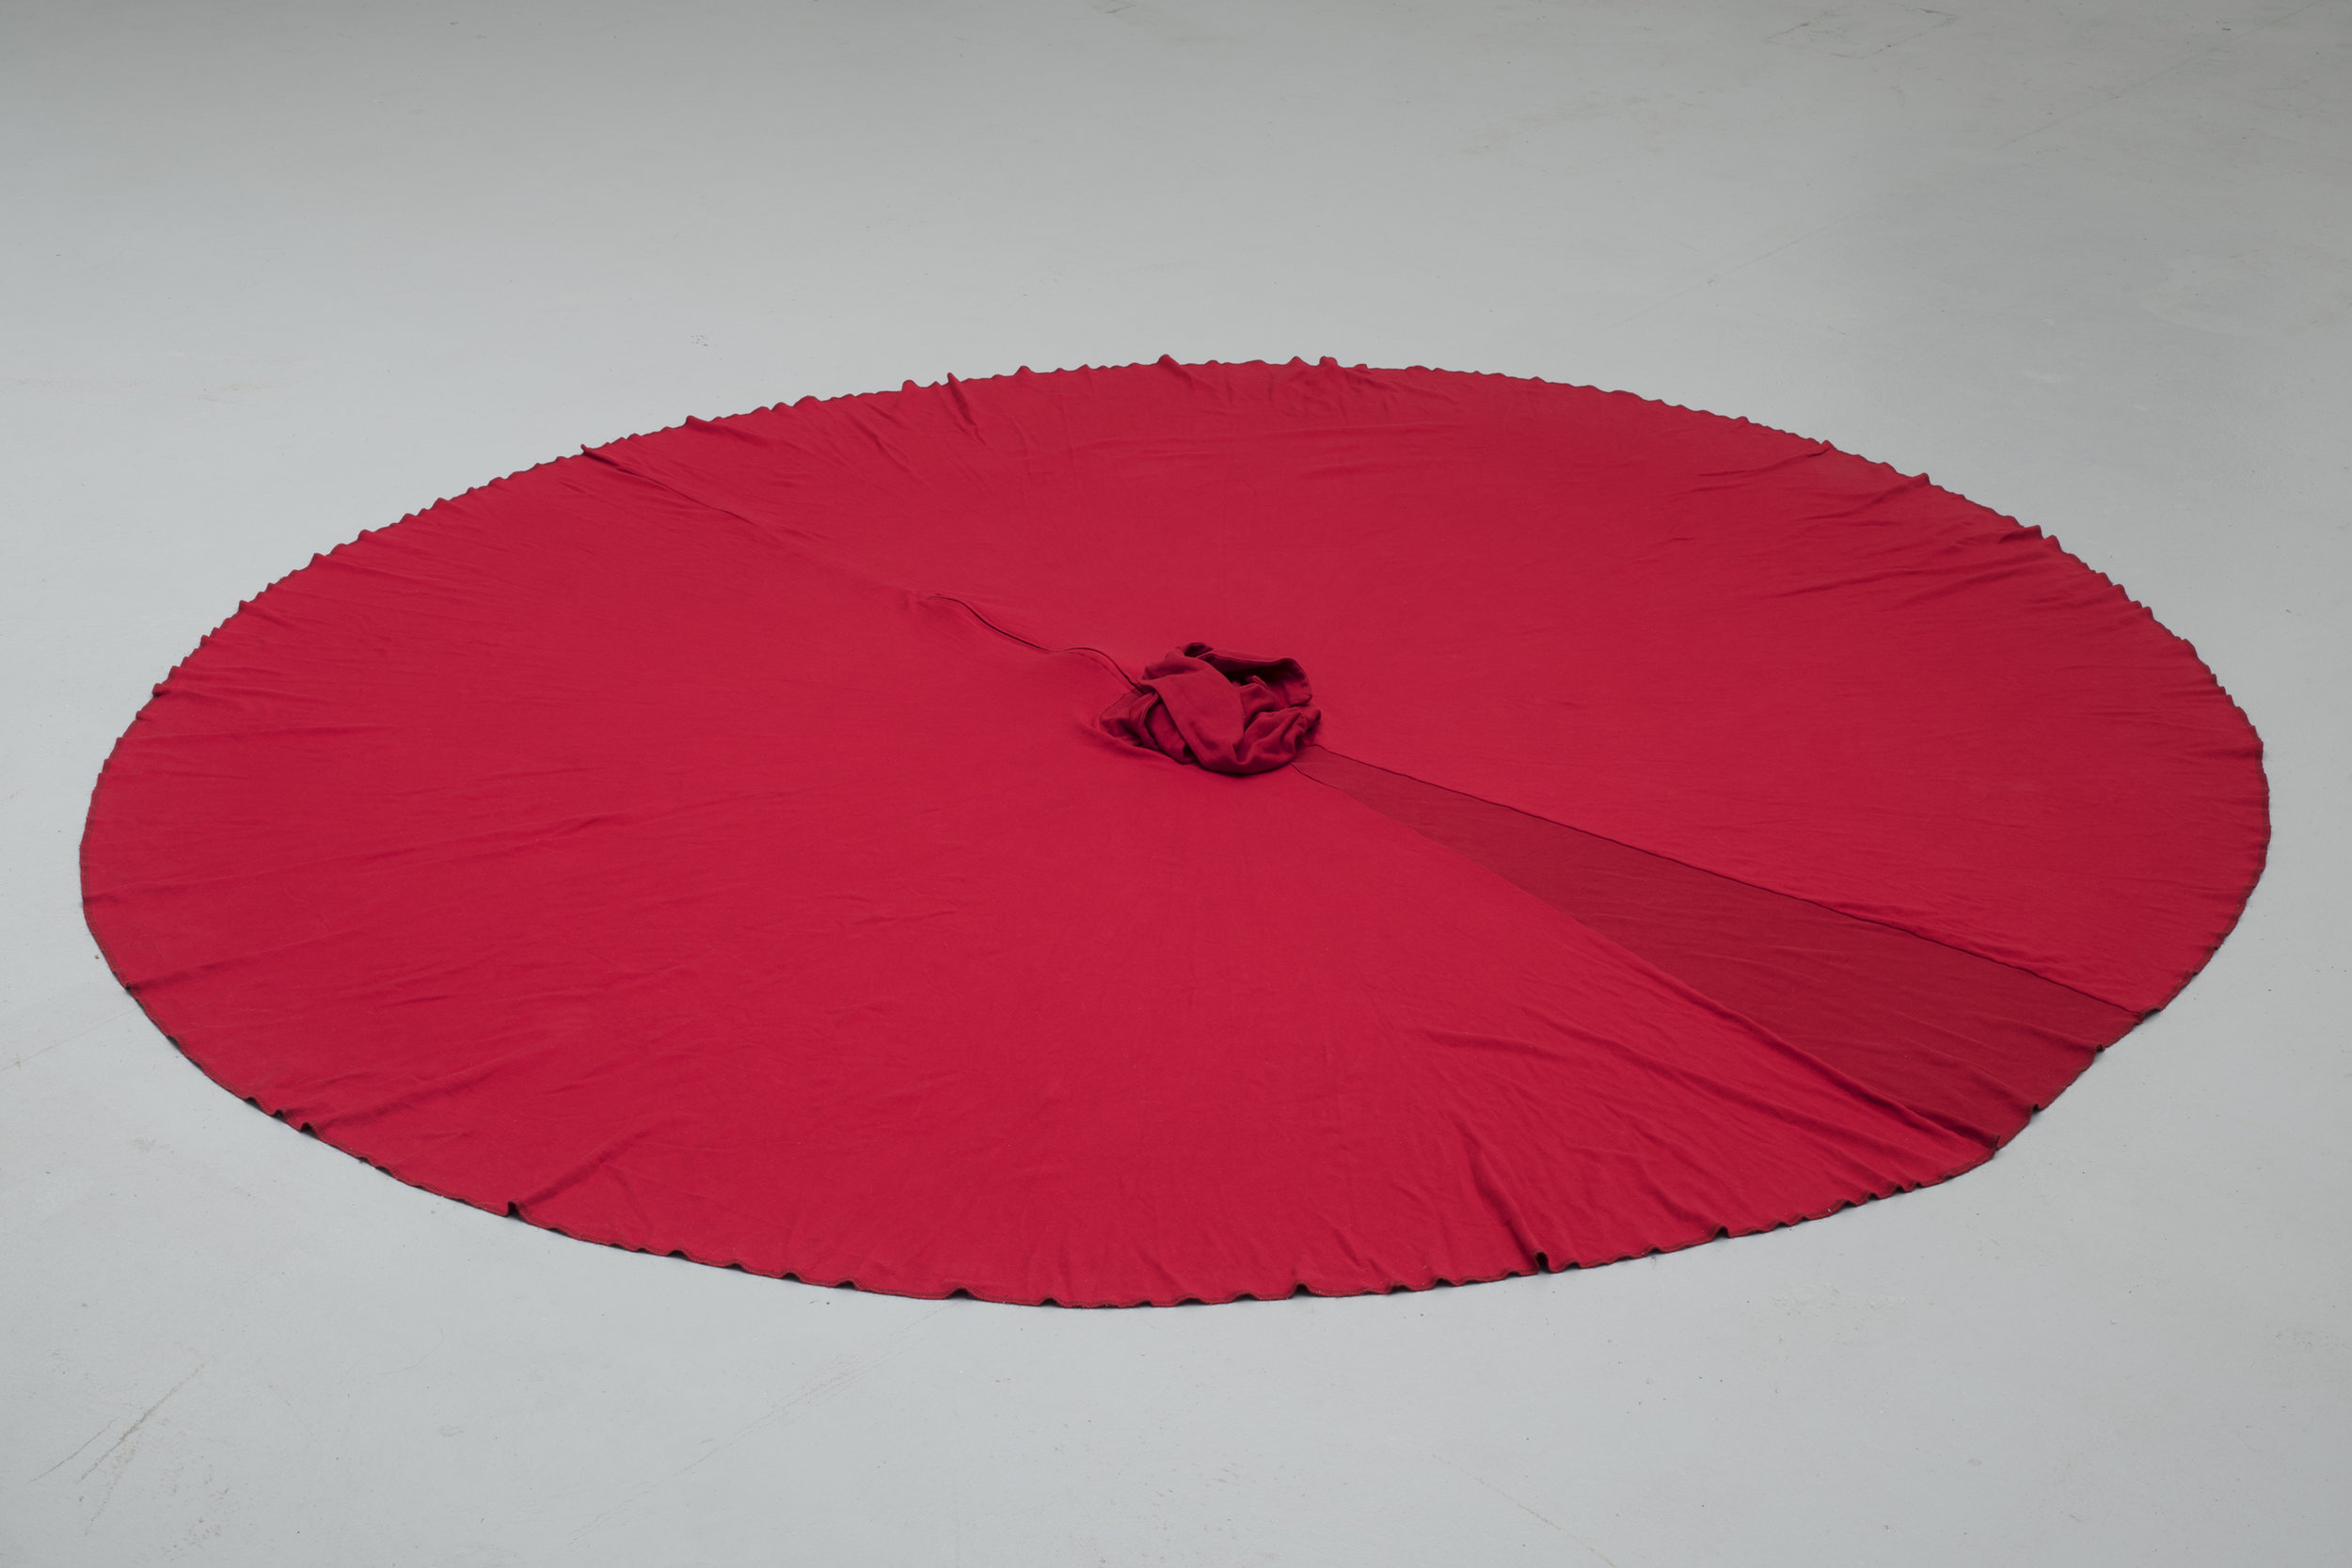 """The Sorceress , 2015 Red dress sewn by the artist's twin, Michael J. Morris, as costuming for a dance entitled  Shades of the Edged Existence  which Michael choreographed and presented in 2007, 94"""" in diameter"""